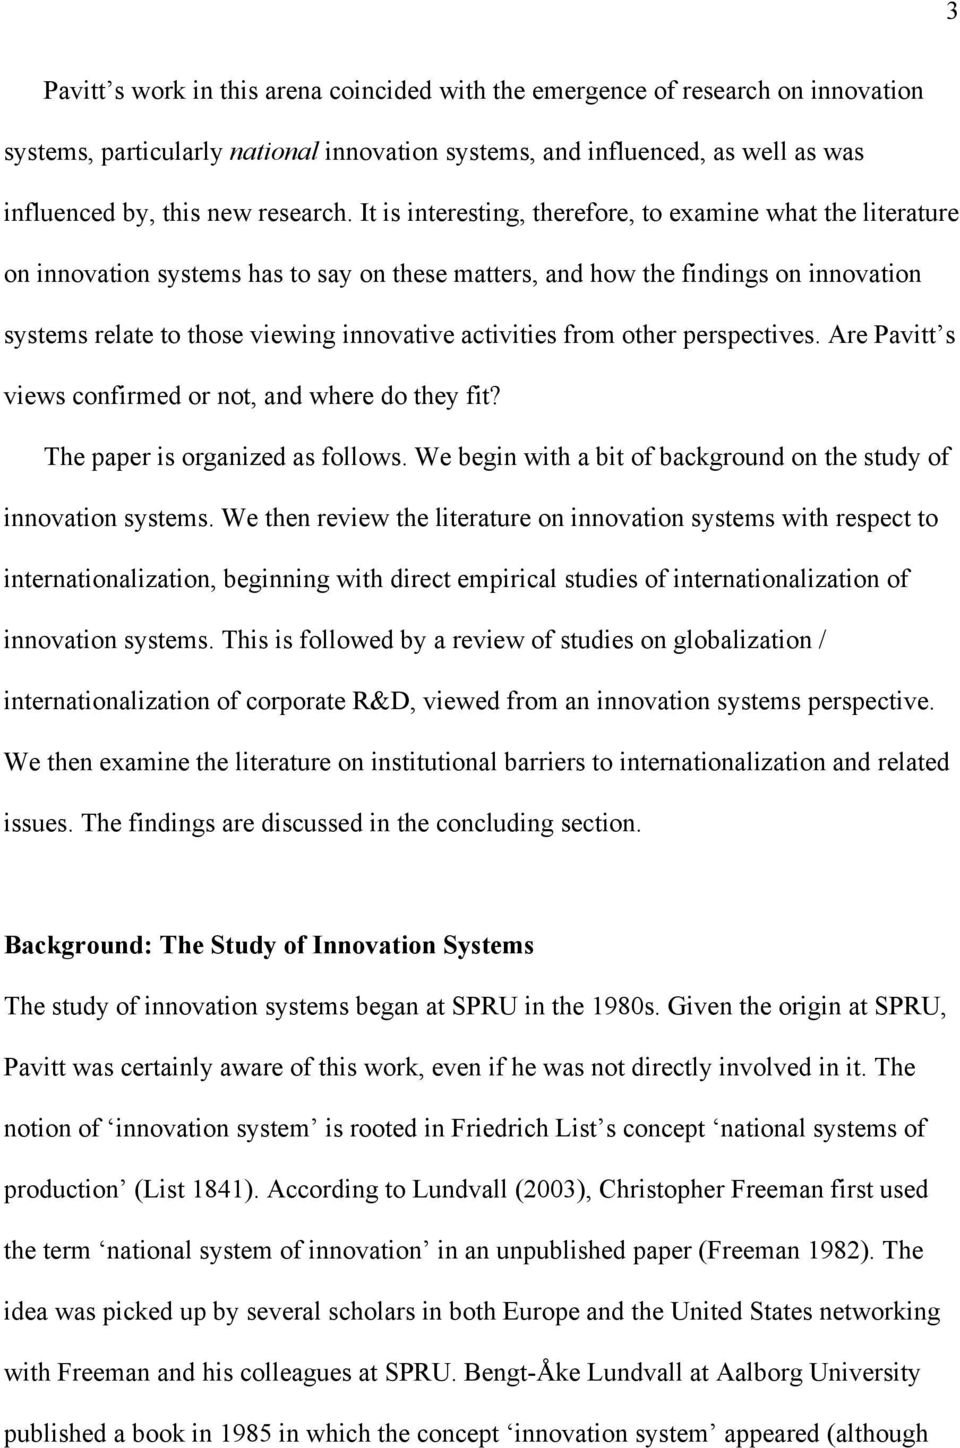 activities from other perspectives. Are Pavitt s views confirmed or not, and where do they fit? The paper is organized as follows. We begin with a bit of background on the study of innovation systems.